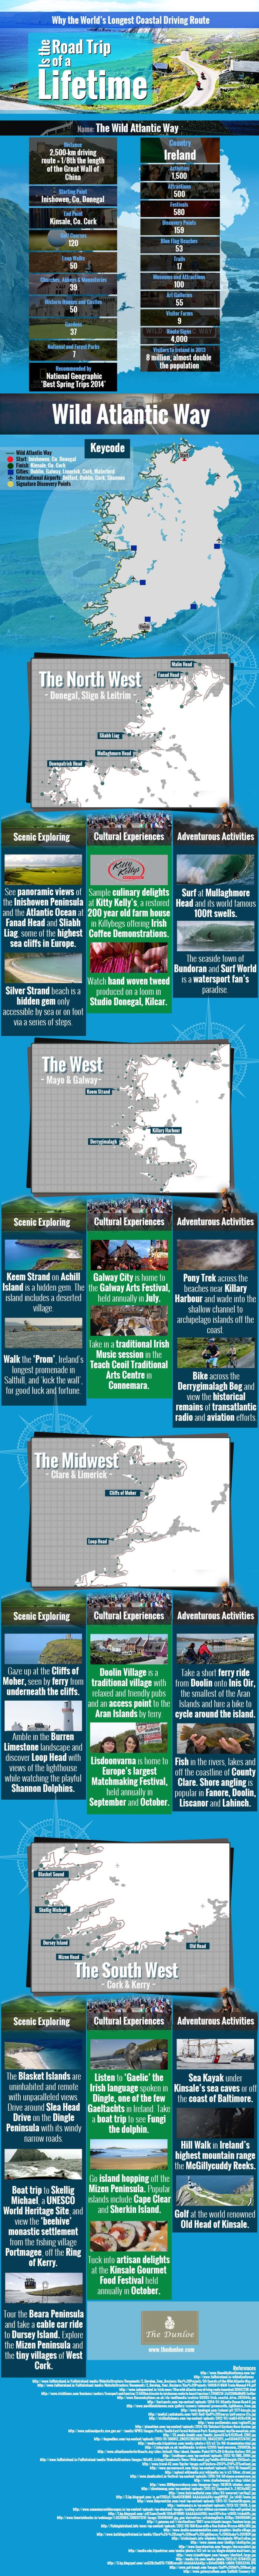 The-Dunloe-the-wild-atlantic-way-infographic